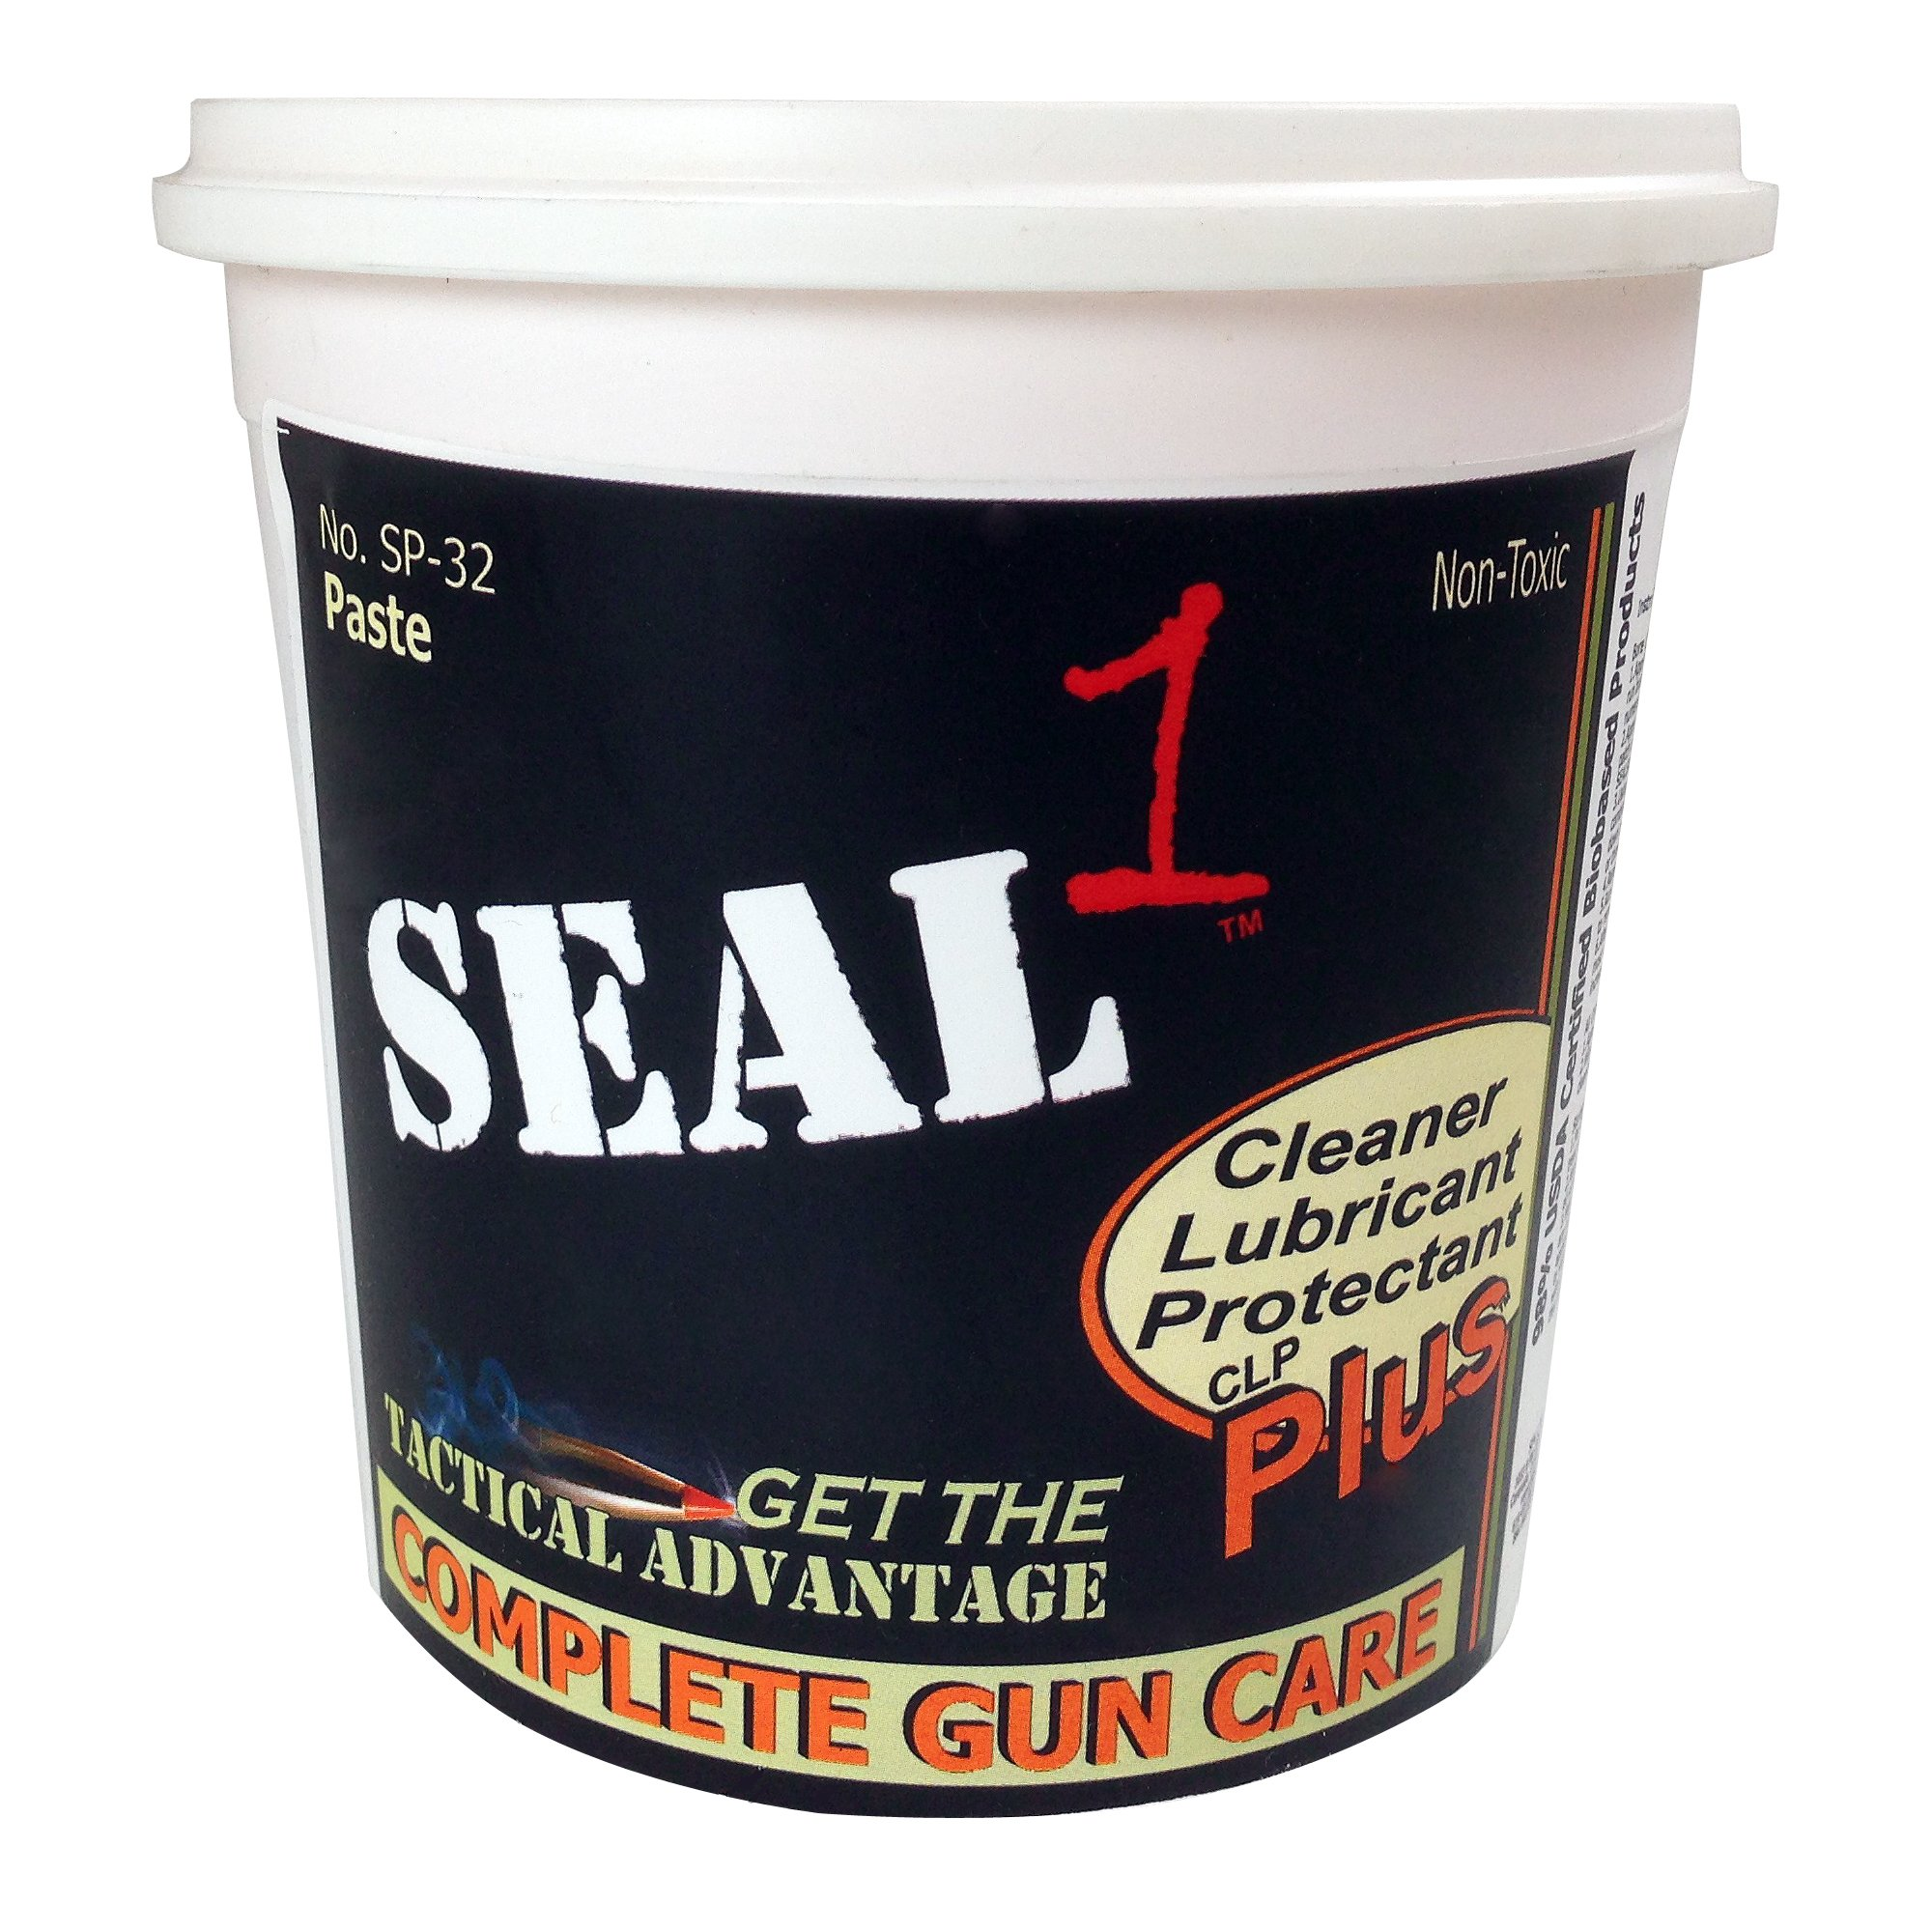 SEAL 1 SP-32 CLP Plus Paste Tub, 32-Ounce by SEAL 1